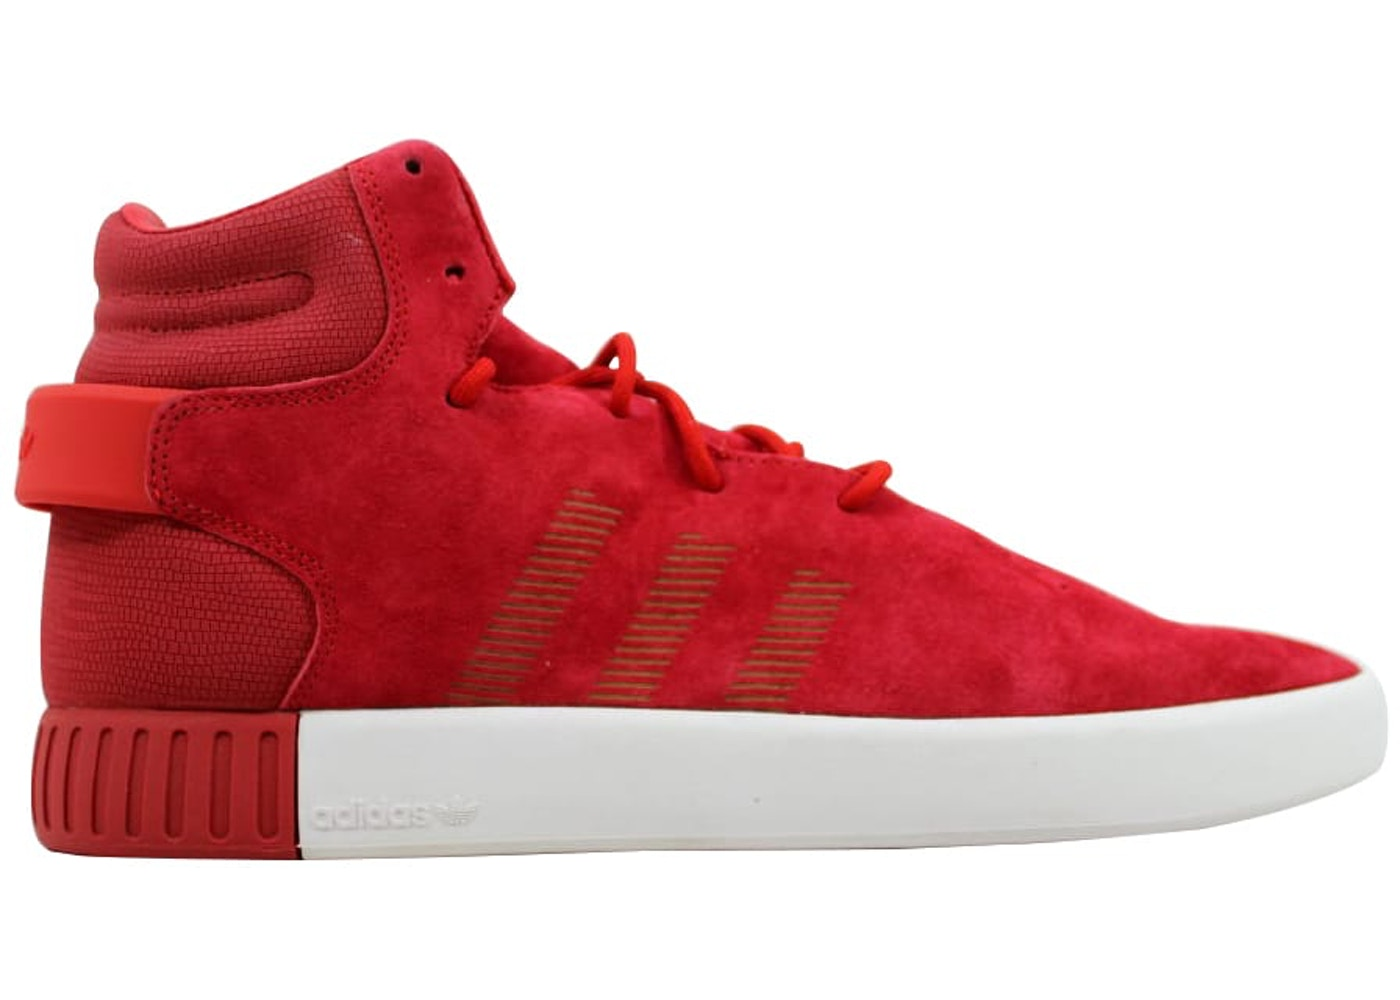 detailed pictures 5caf5 4e0f9 adidas Tubular Invader Red/Red-Vintage White - S81963